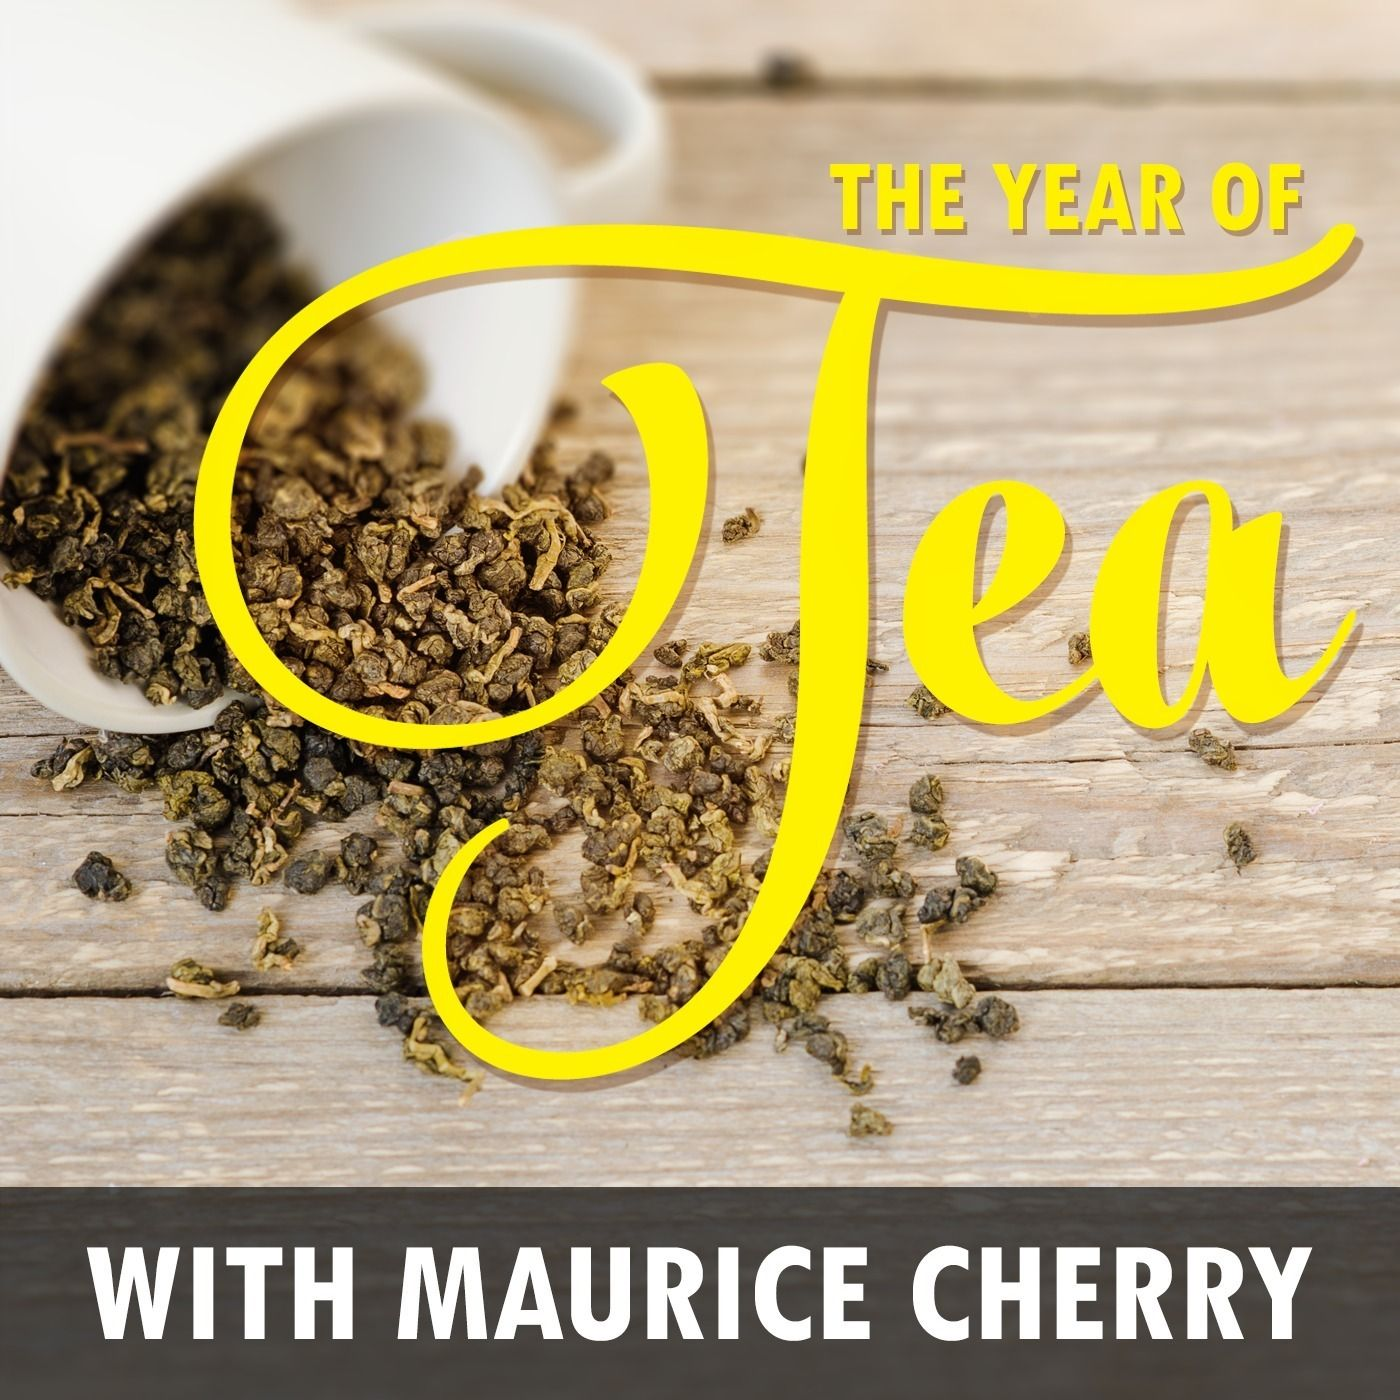 The Year of Tea